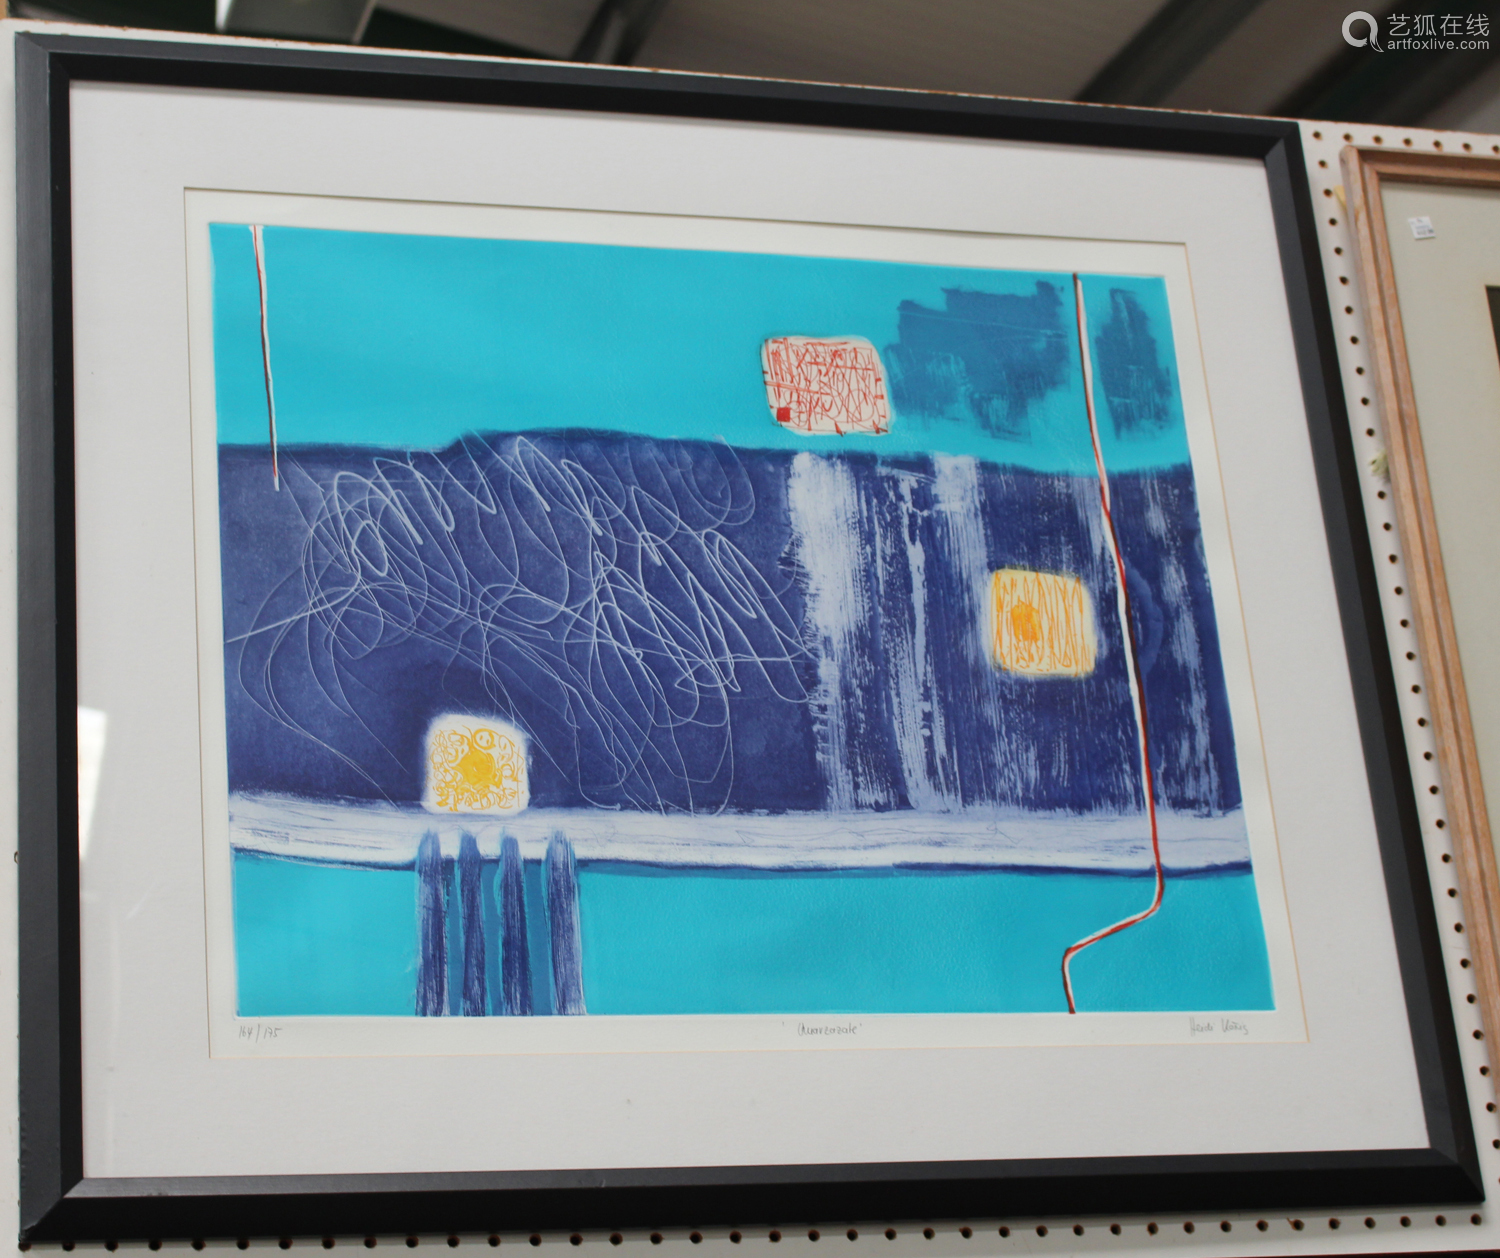 Heidi Koenig - 'Ouarzazate', 21st century colour etching with aquatint, signed, titled, and